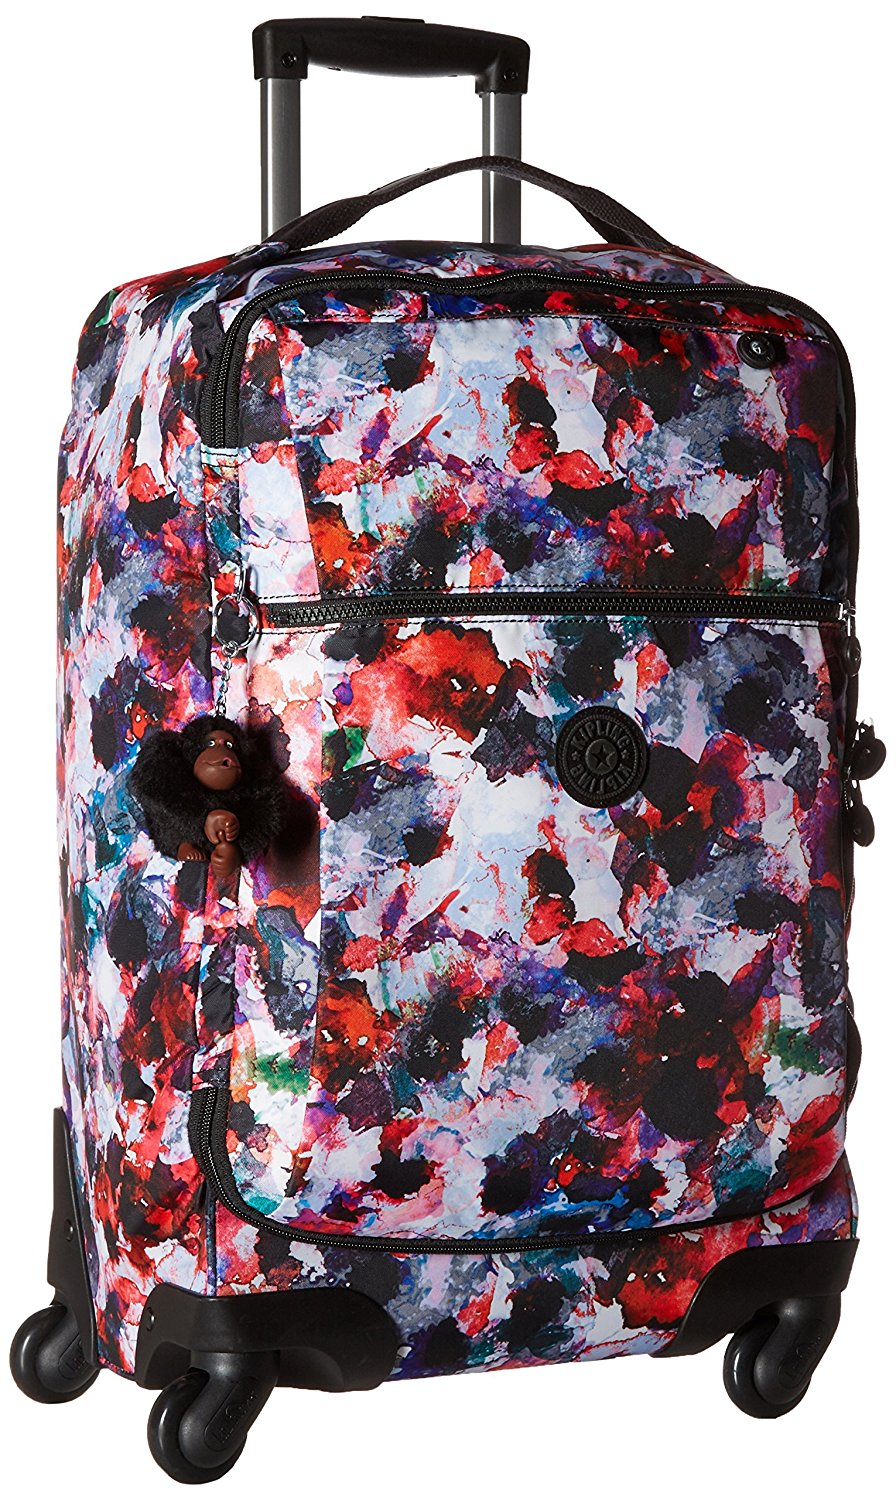 2a0bcb598c5 Get Quotations · Kipling Darcey Small Printed Wheeled Luggage Carry On Bag